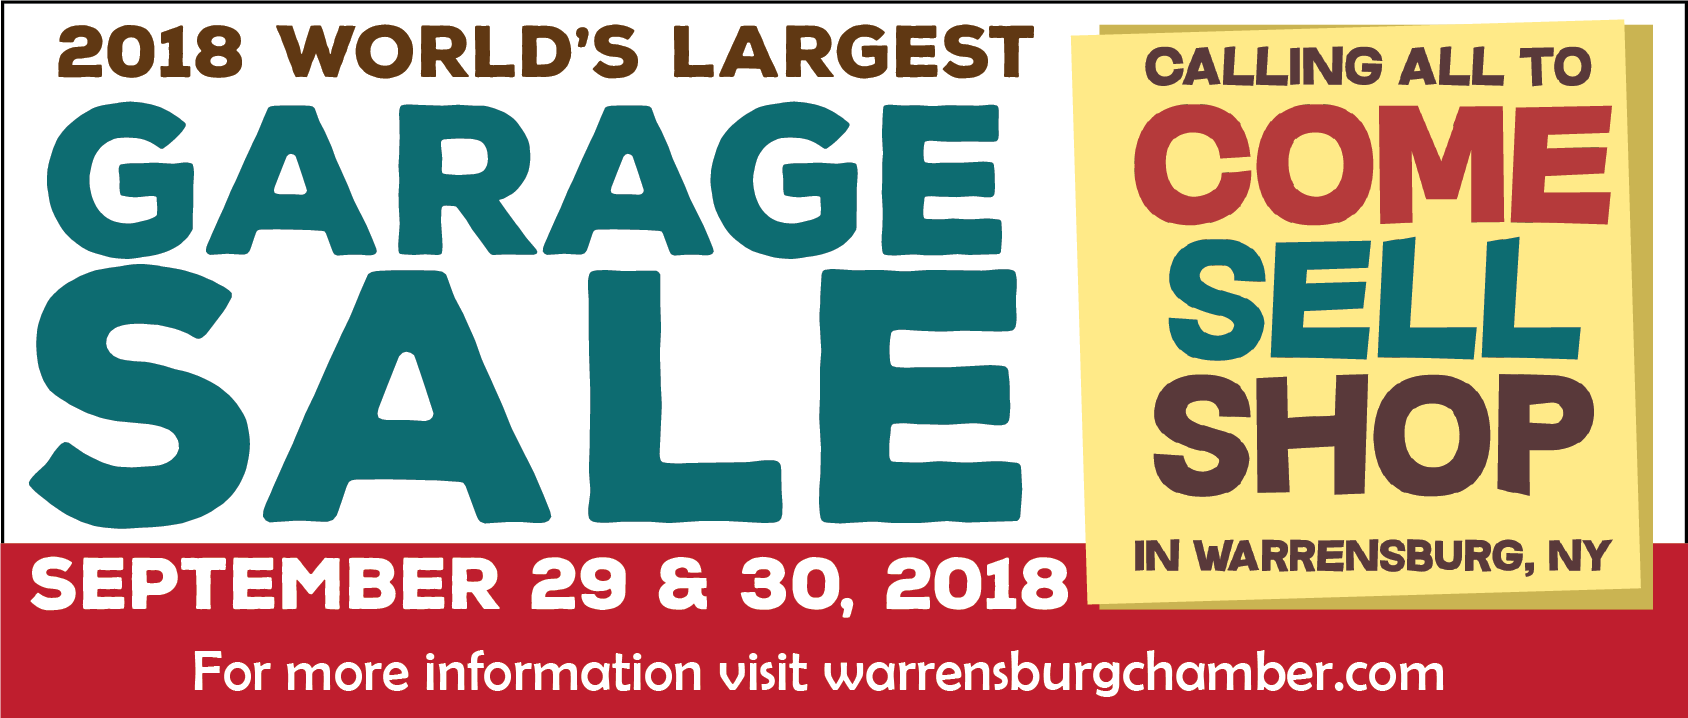 Word's Largest Garage Sale Warrensburg NY